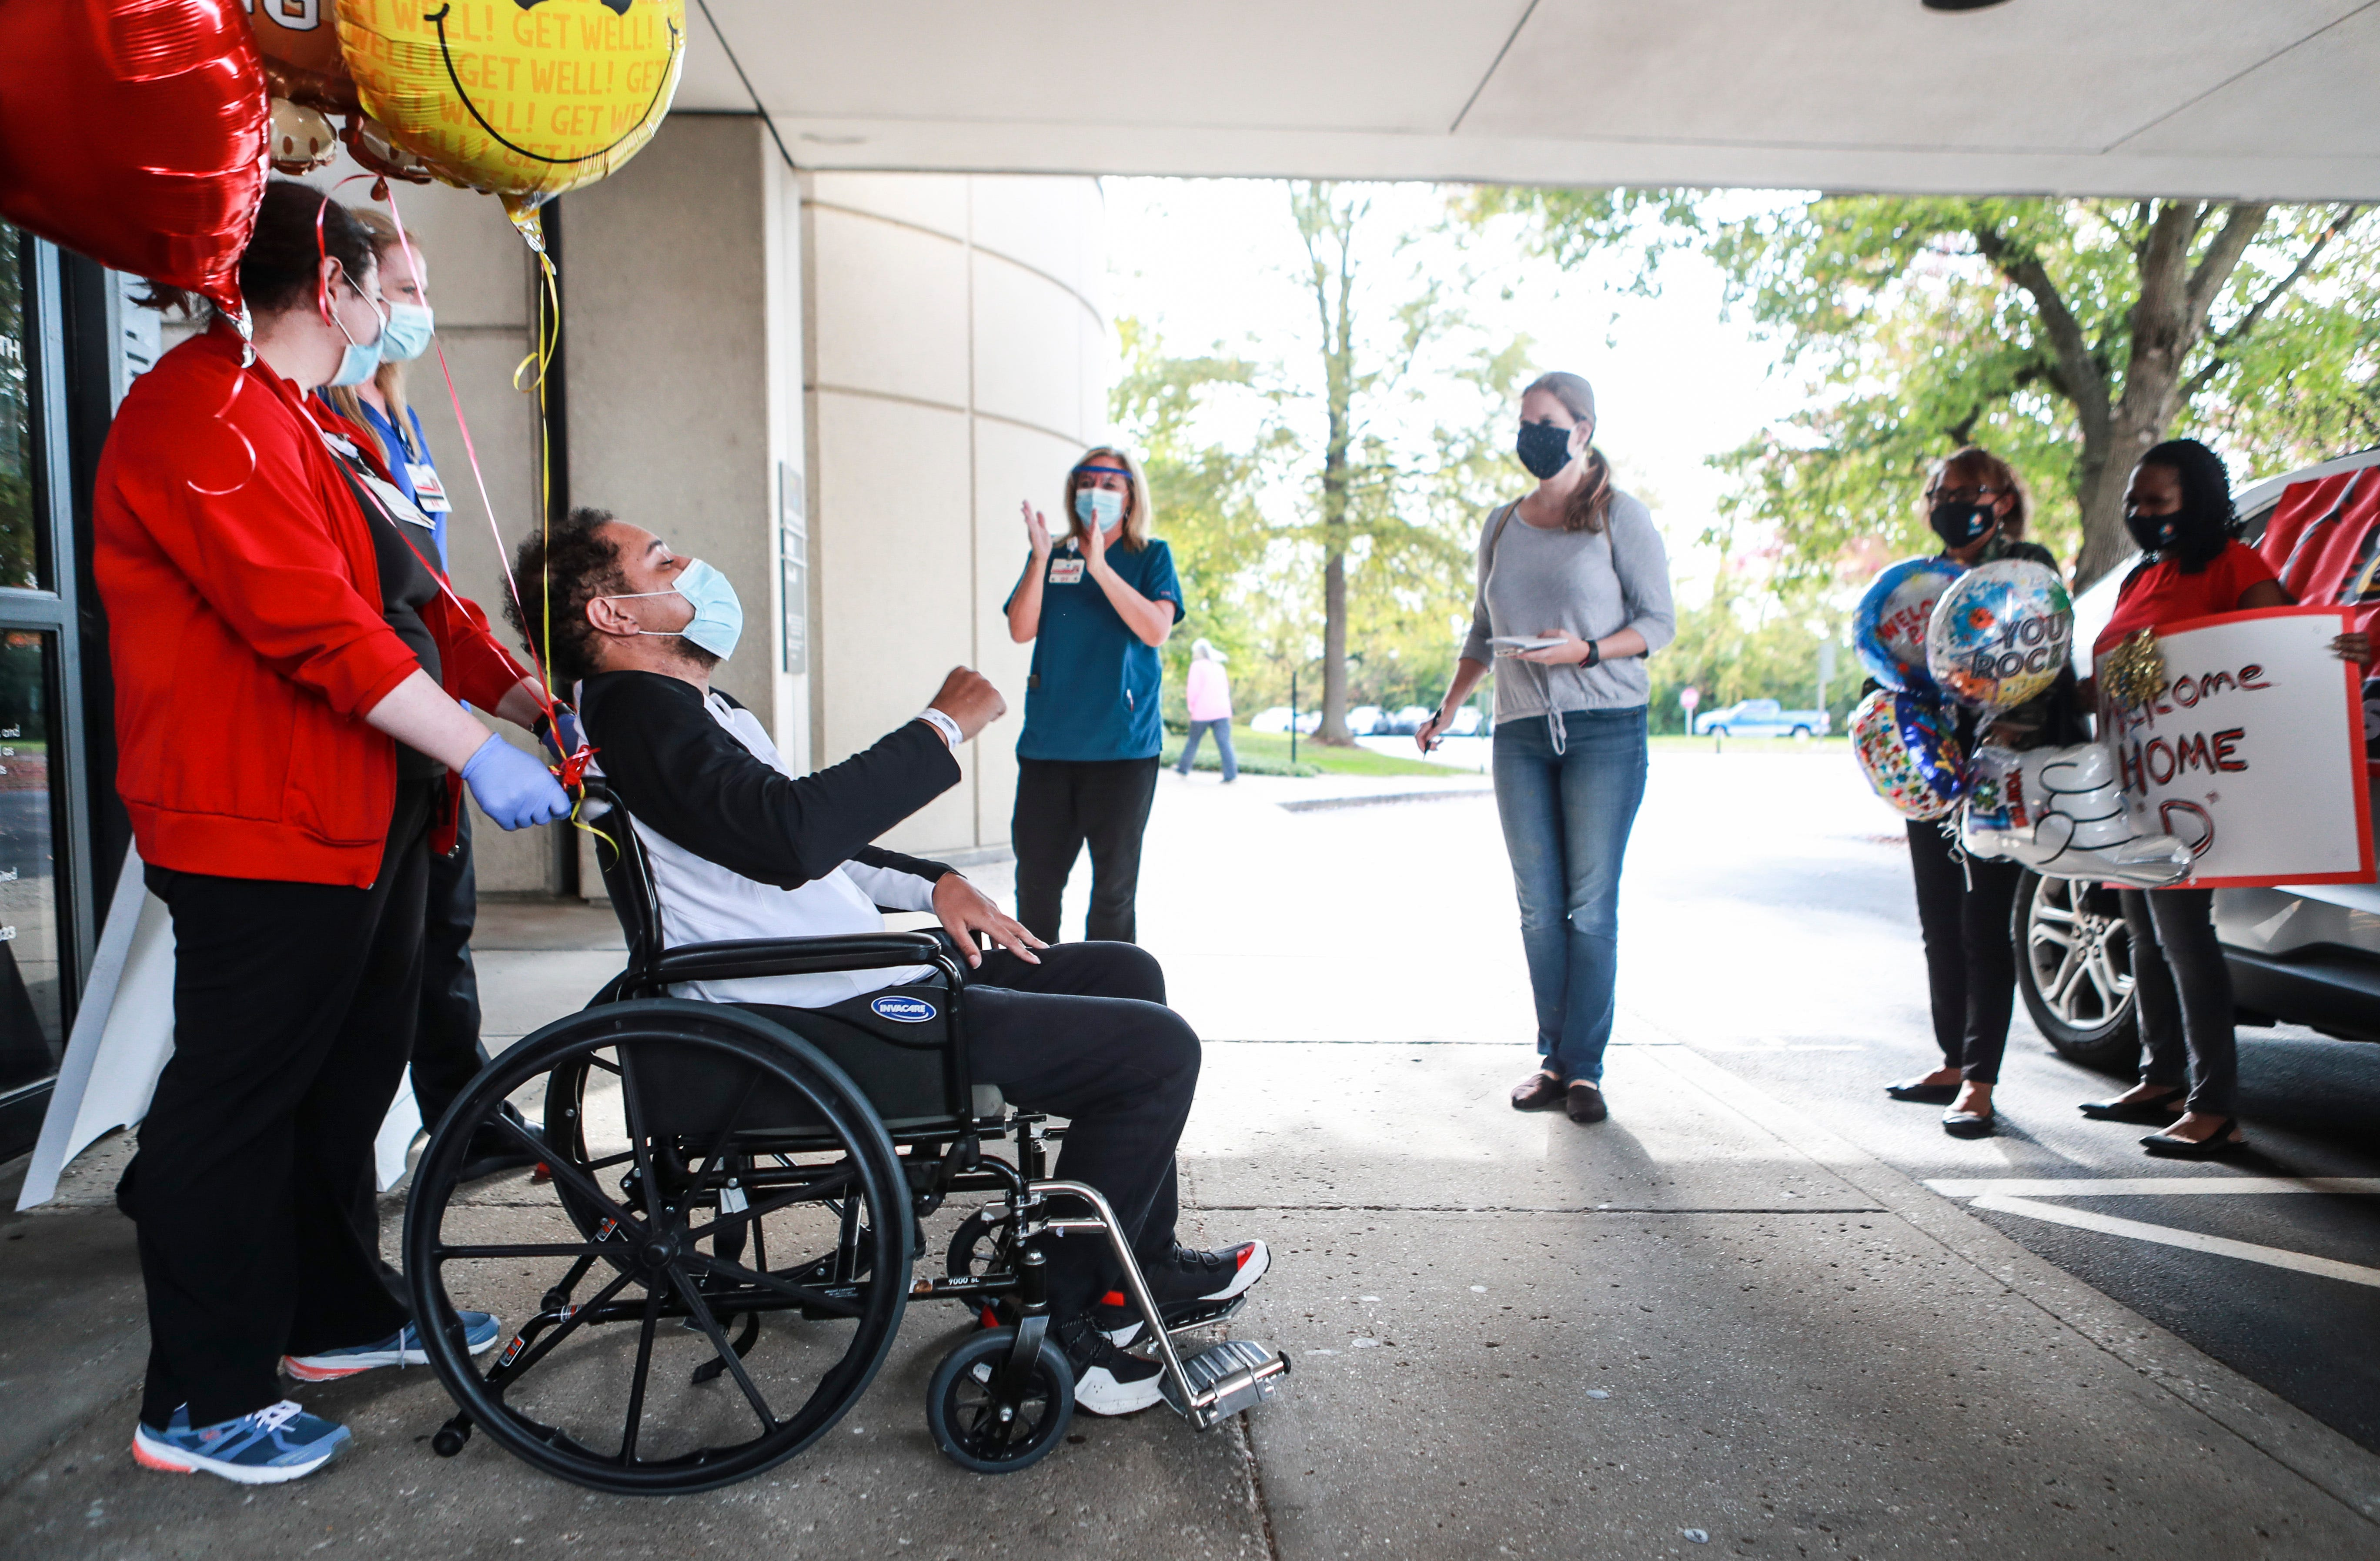 After battling COVID-19 for more than 90 days, Demetrius Booker celebrates his release from Louisville Baptist East on Friday to finally go home. Oct. 23, 2020